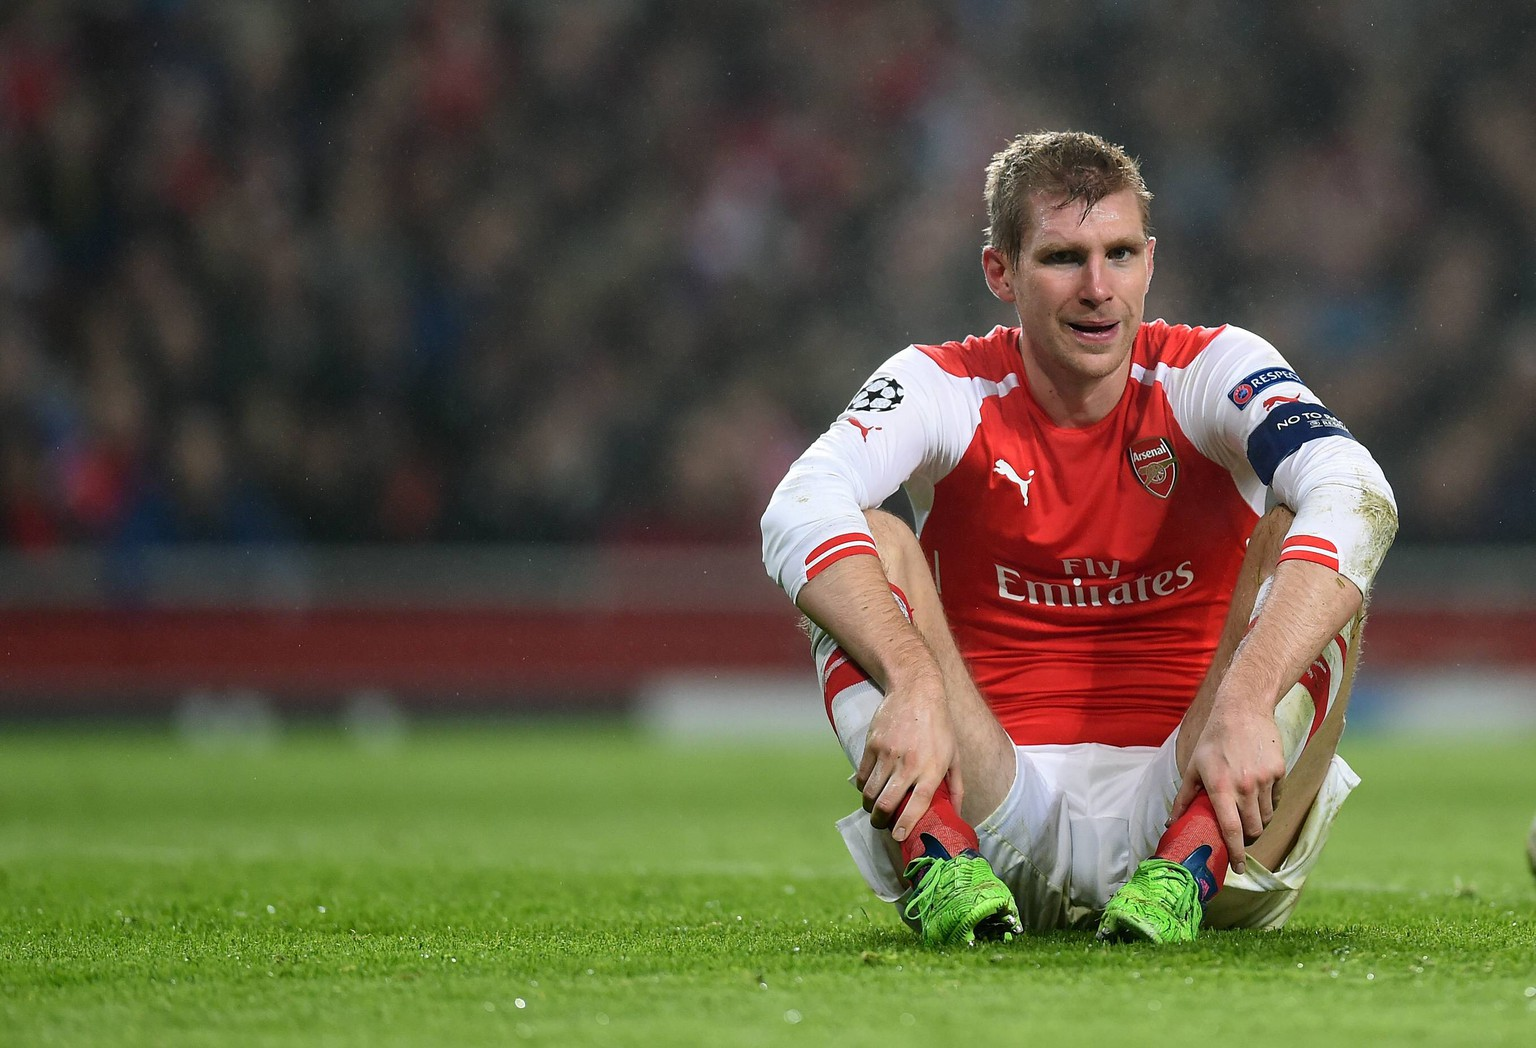 FUSSBALL CHAMPIONS LEAGUE SAISON 2014/2015 Vorrunde Arsenal London - Borussia Dortmund 26.11.2014 Per Mertesacker (Arsenal) sitz auf dem Rasen PUBLICATIONxNOTxINxAUTxSUIxITA